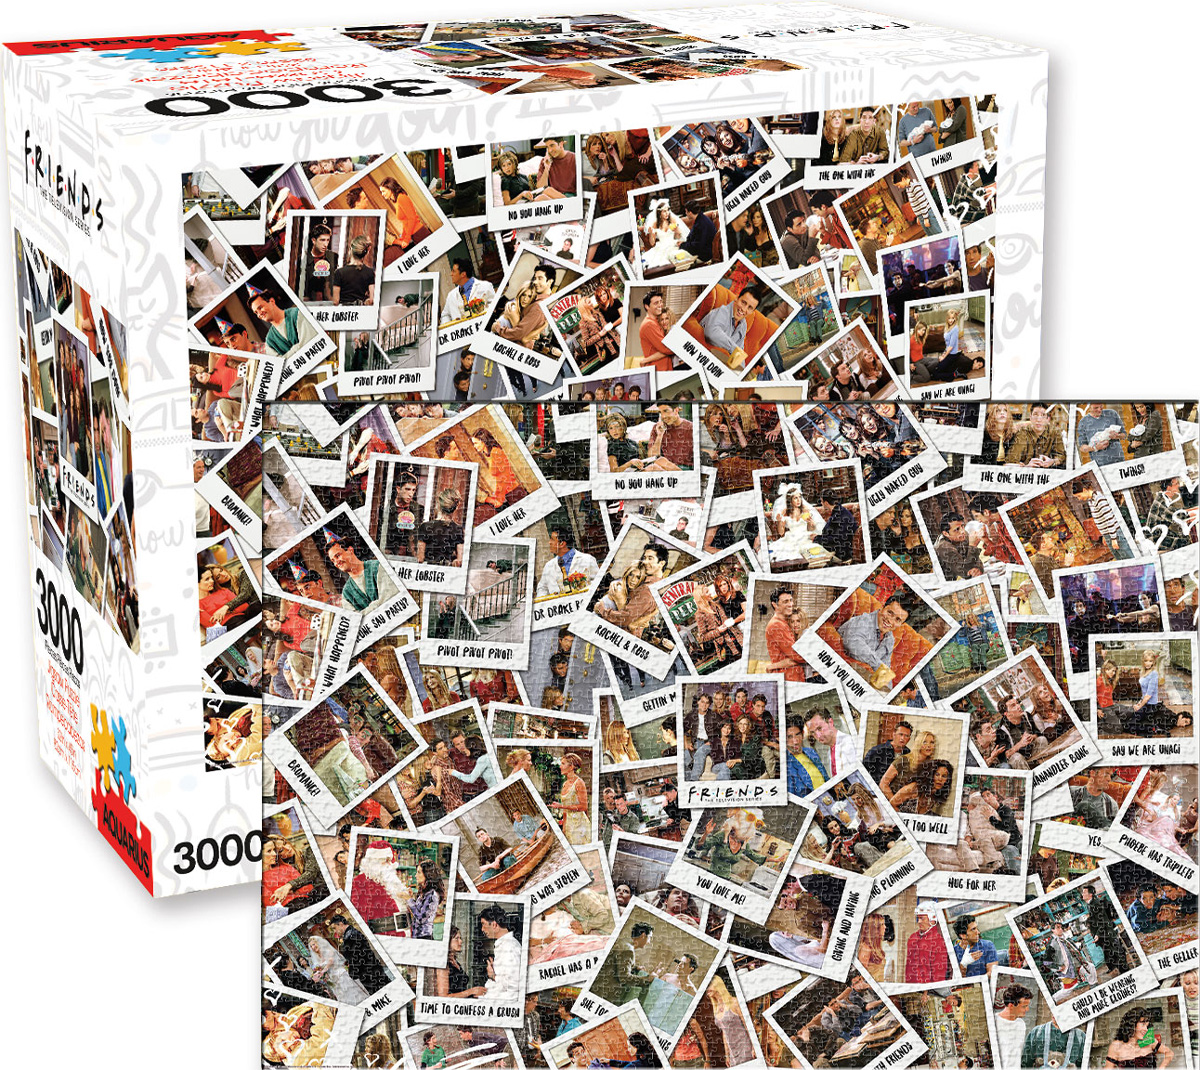 Friends Movies / Books / TV Jigsaw Puzzle